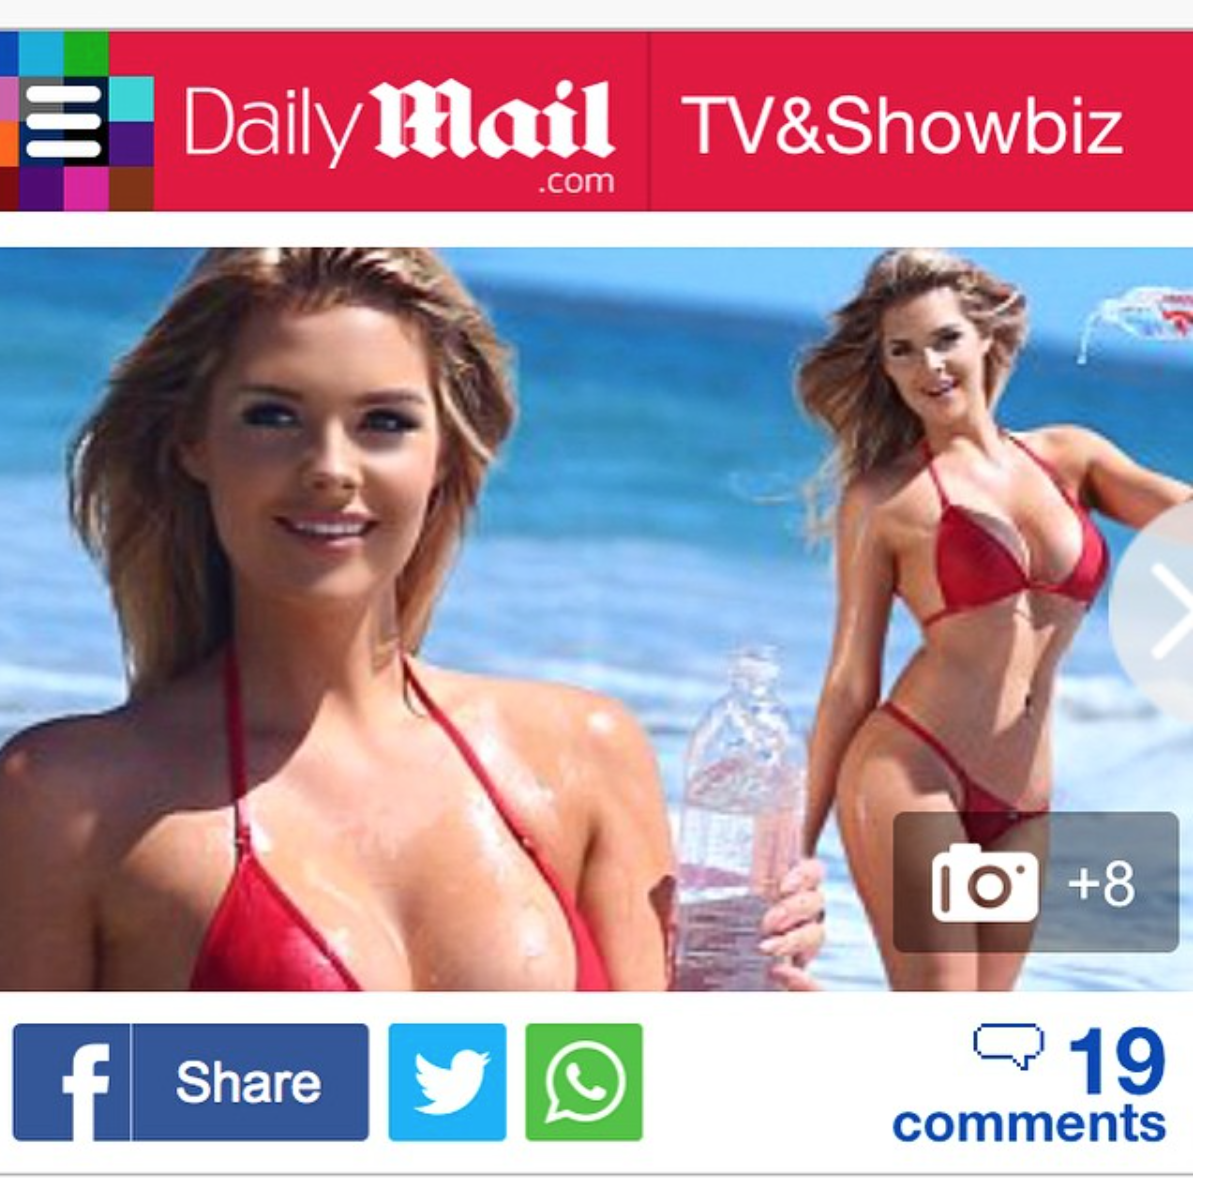 138 Water in Daily Mail